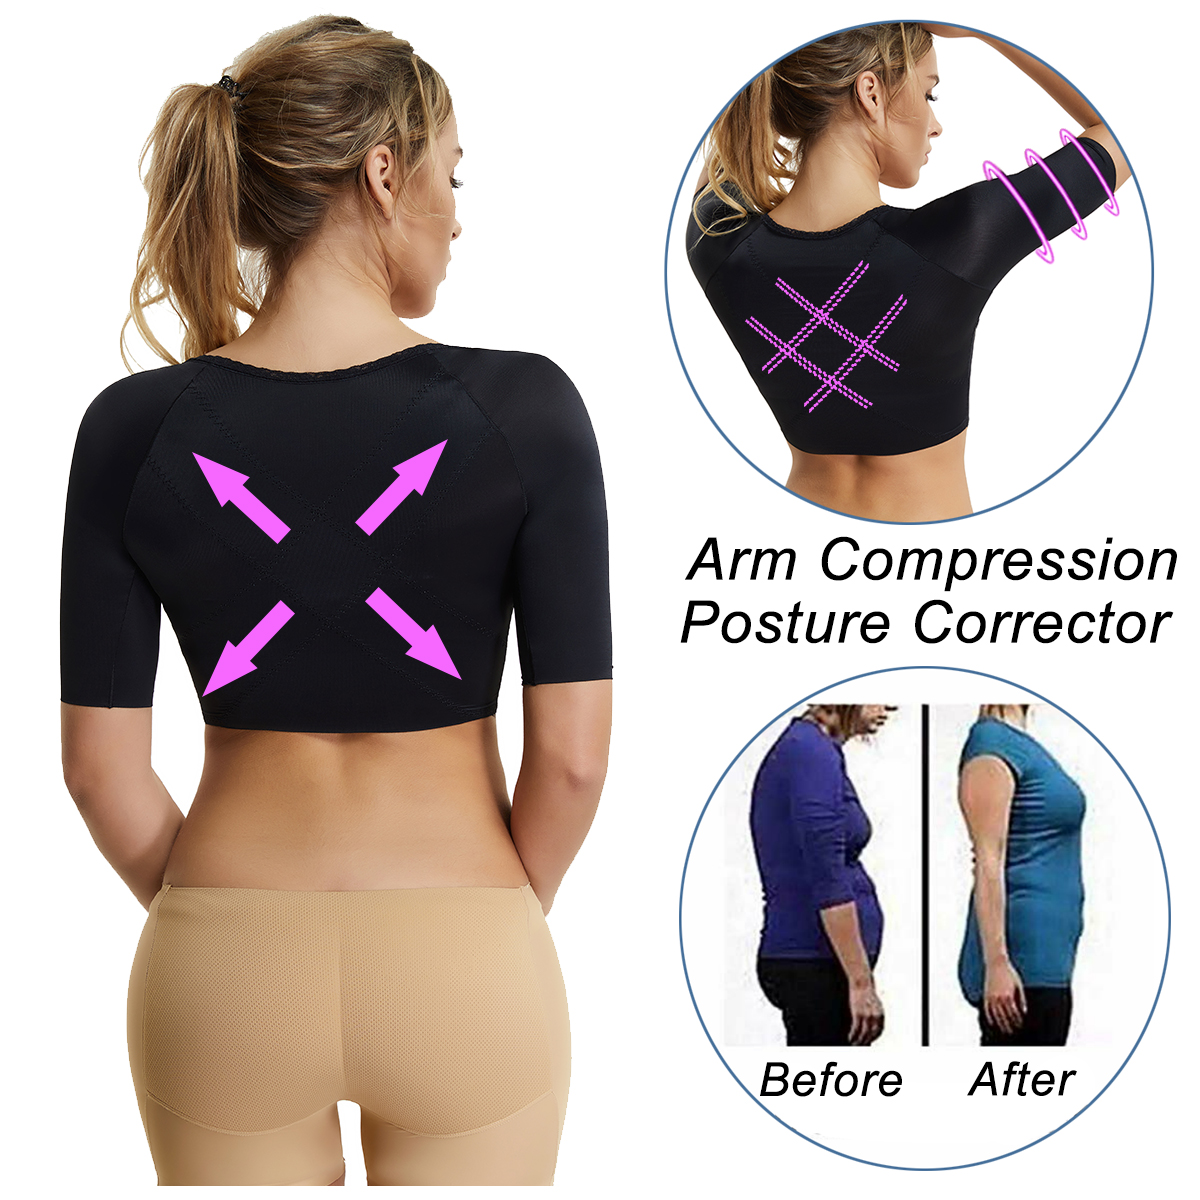 Women Humpback Posture Corrector Invisible Arm Shaper Waist trainer Compression Sleeves Shapewear Chest Brace Up Shoulder Belt